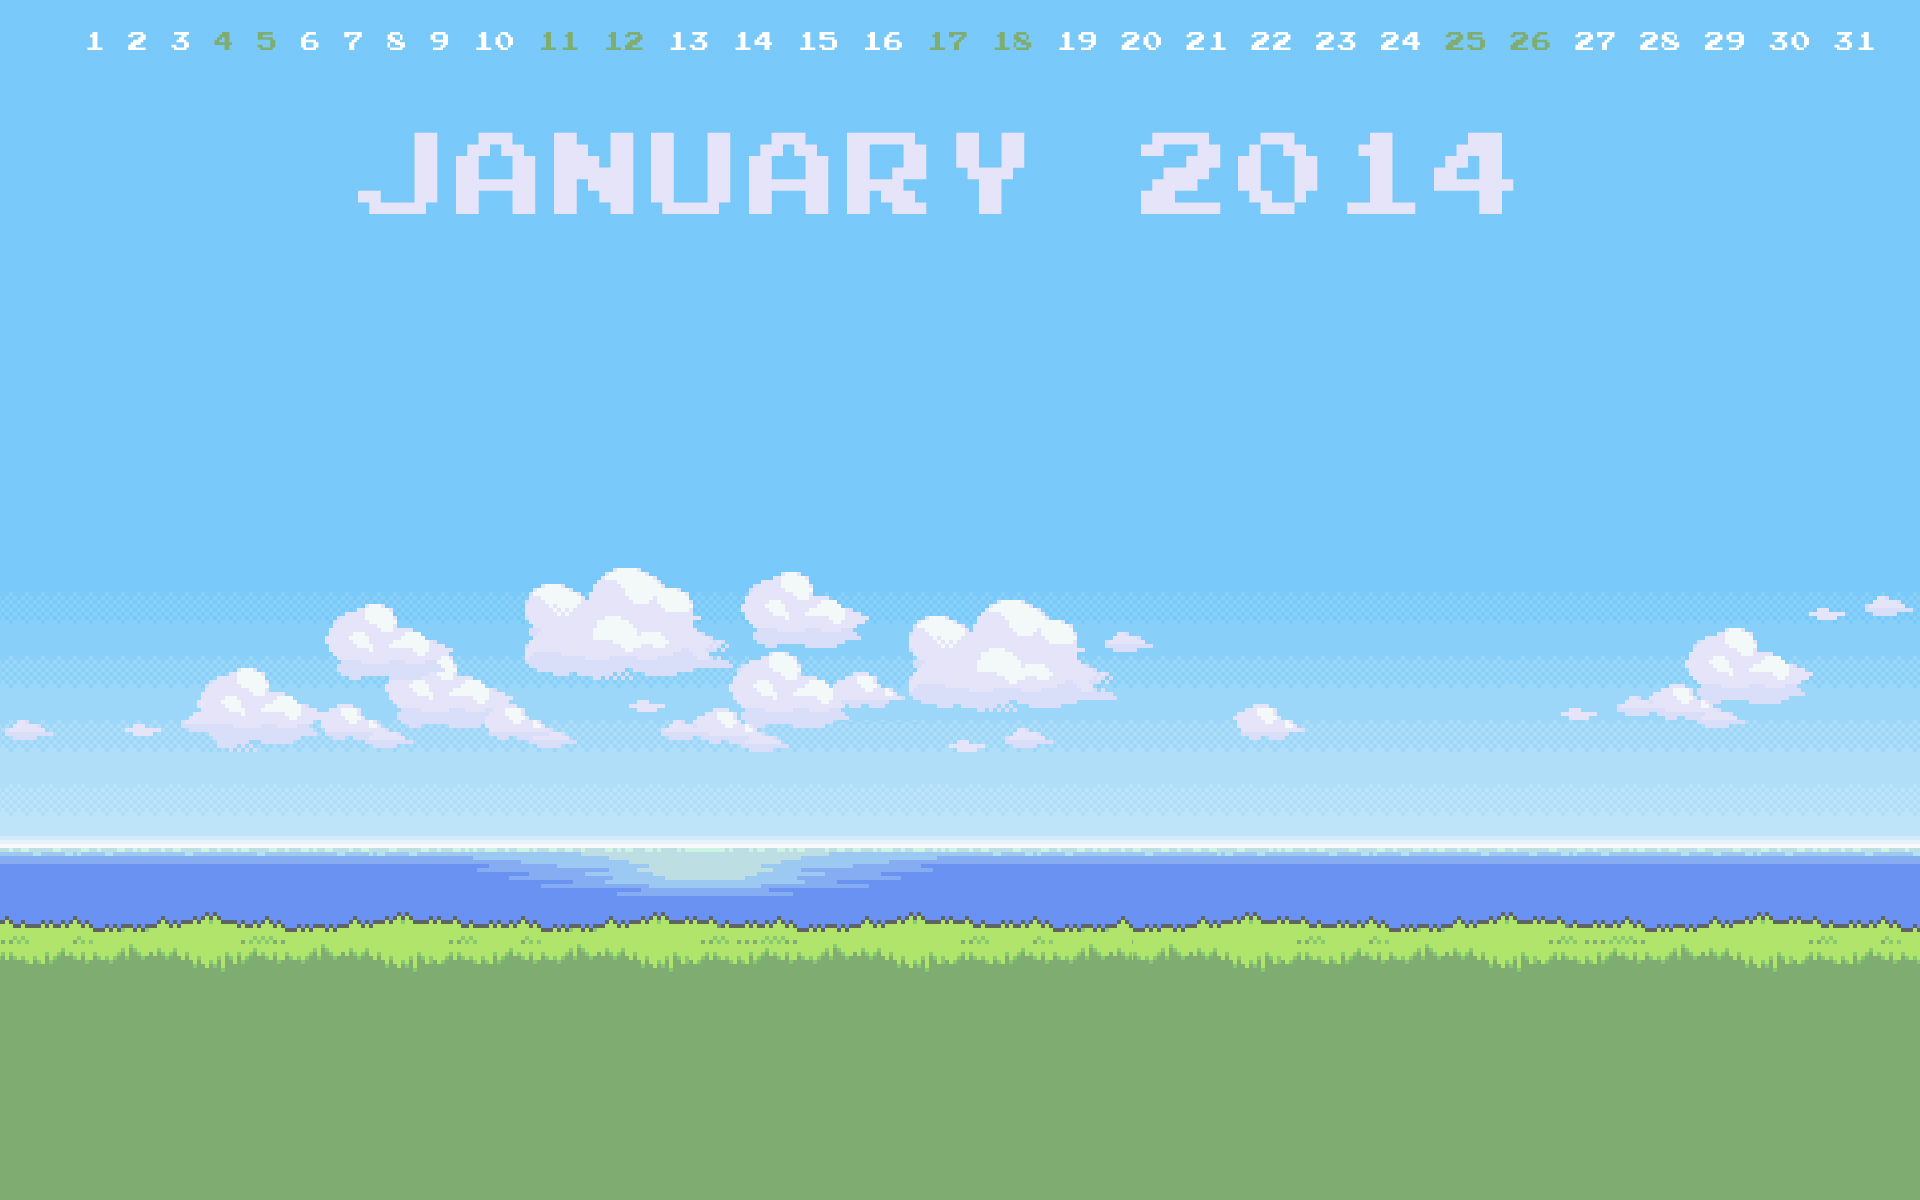 Gaming Wallpaper Calendar – January 2014